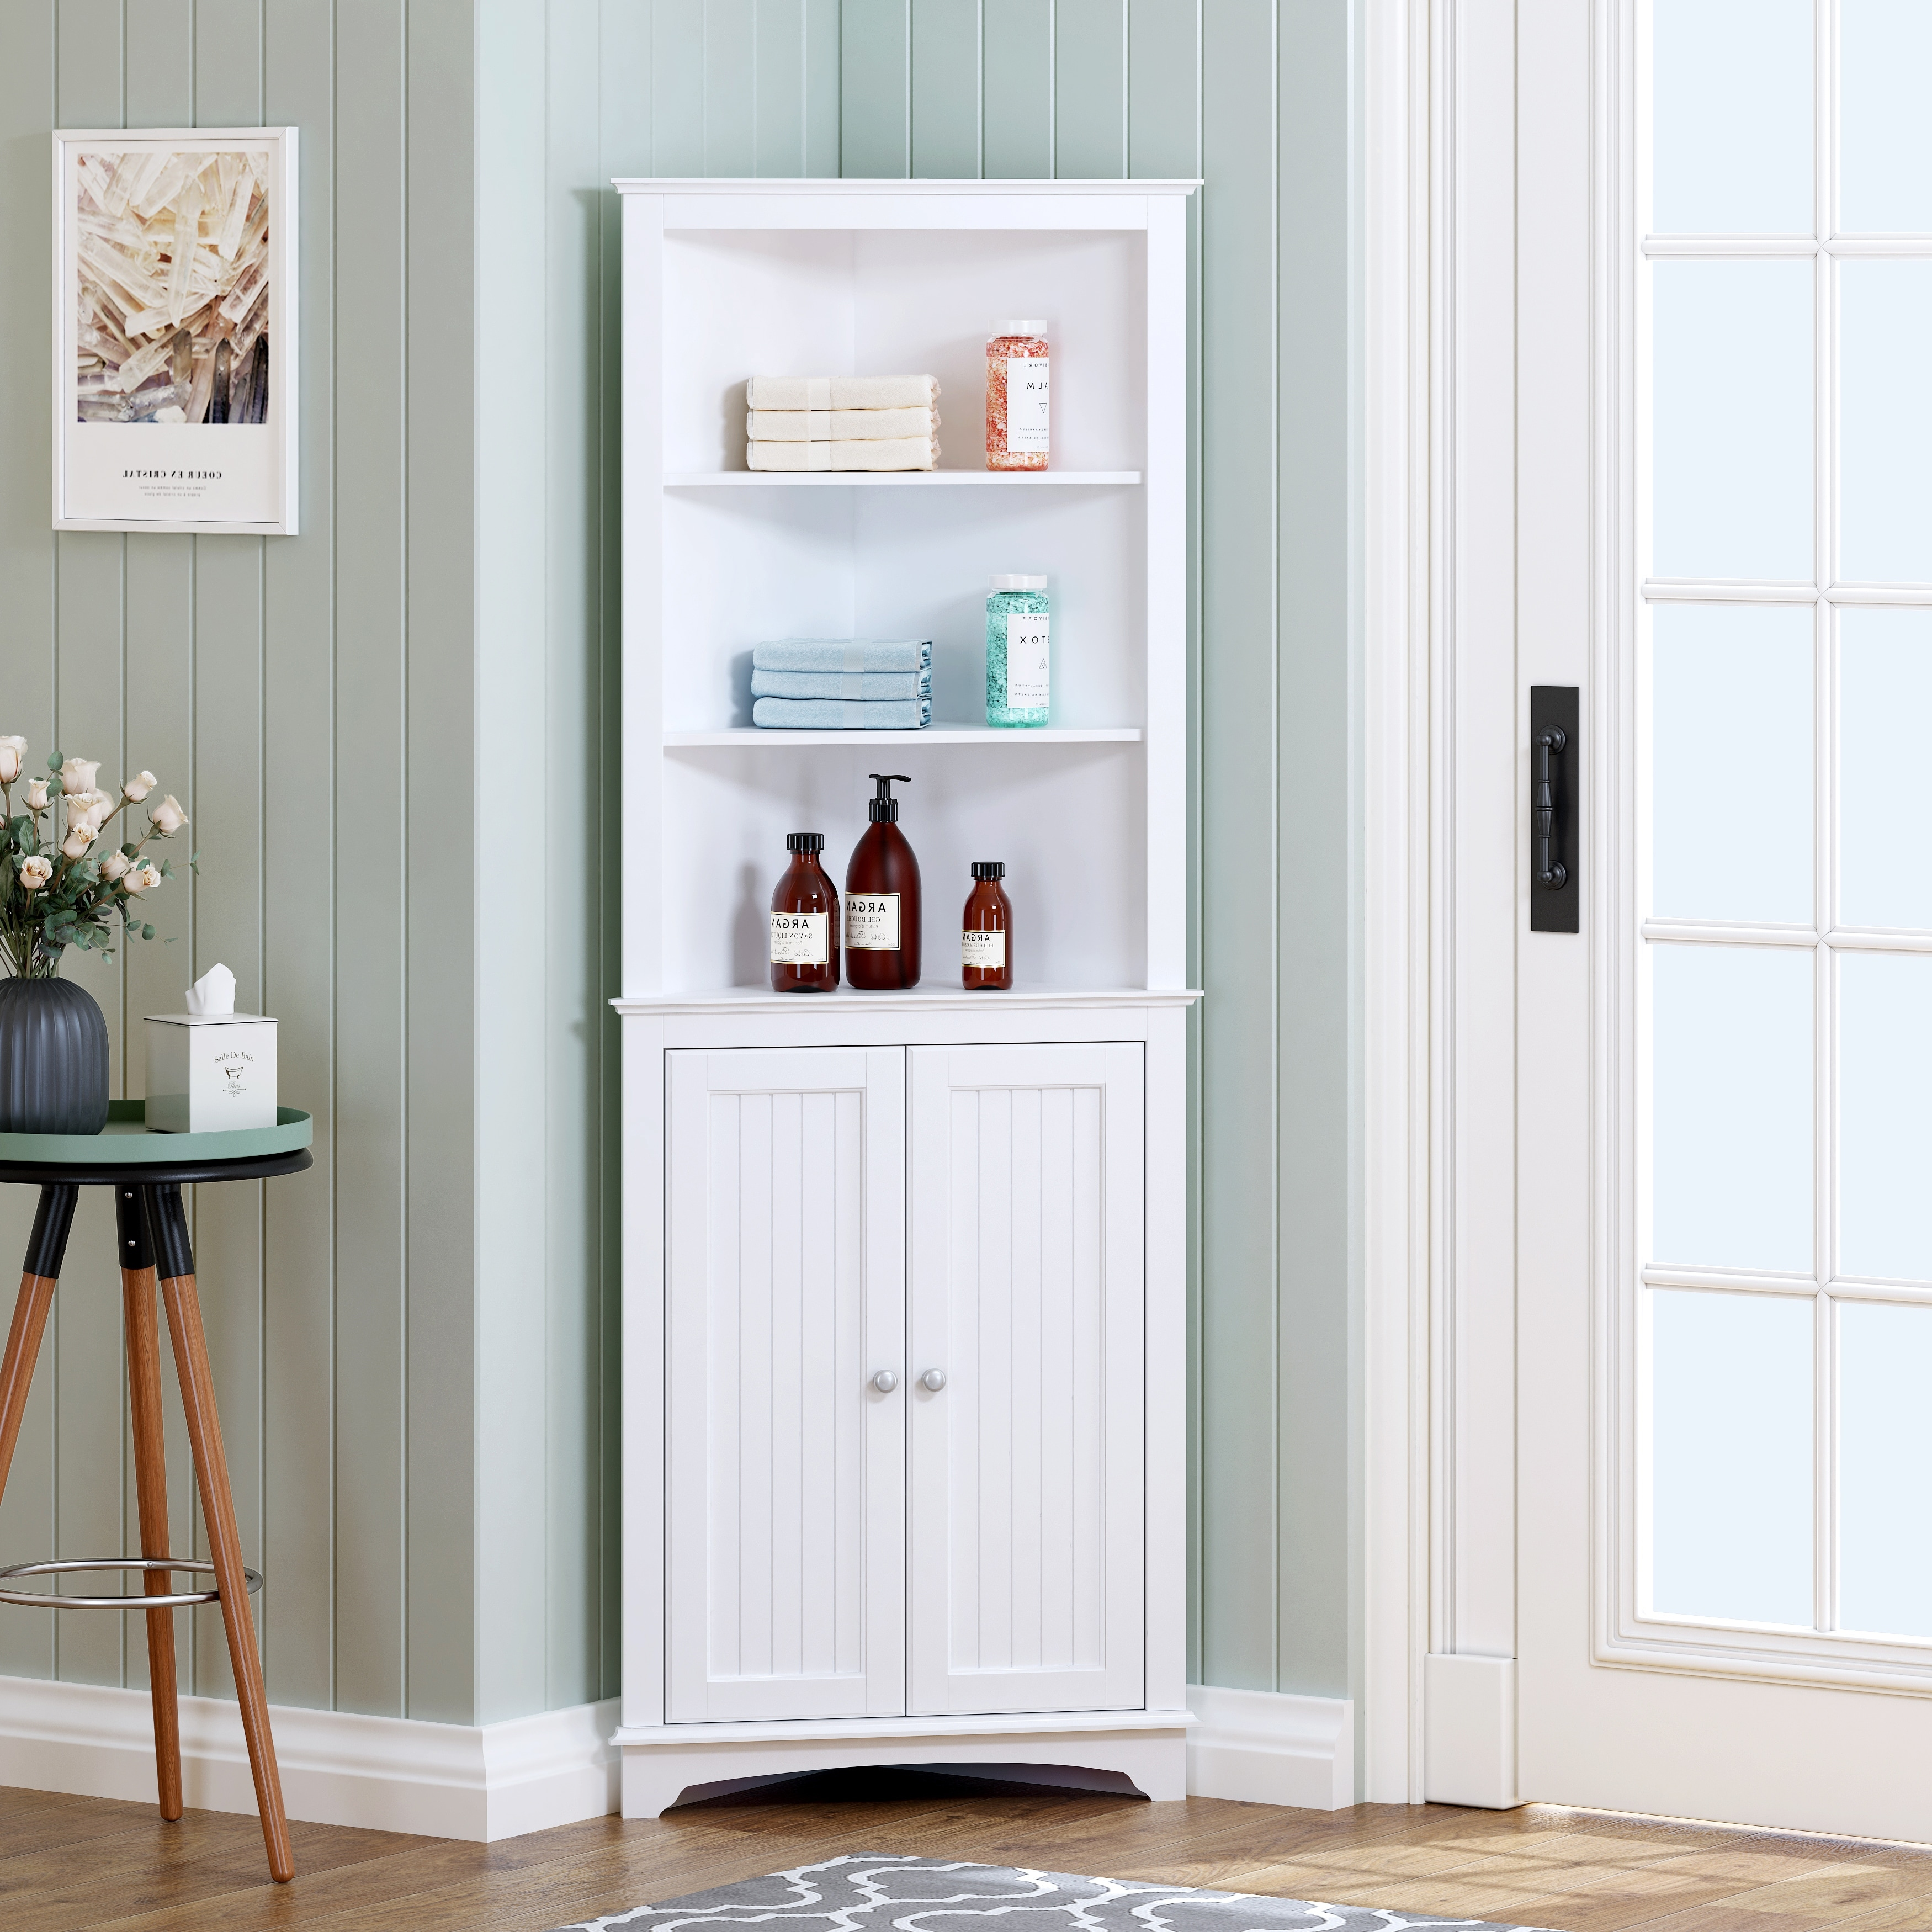 Spirich Bathroom Storage Tall Corner Cabinet With 2 Doors And 3 Tier Shelves White Overstock 31673368